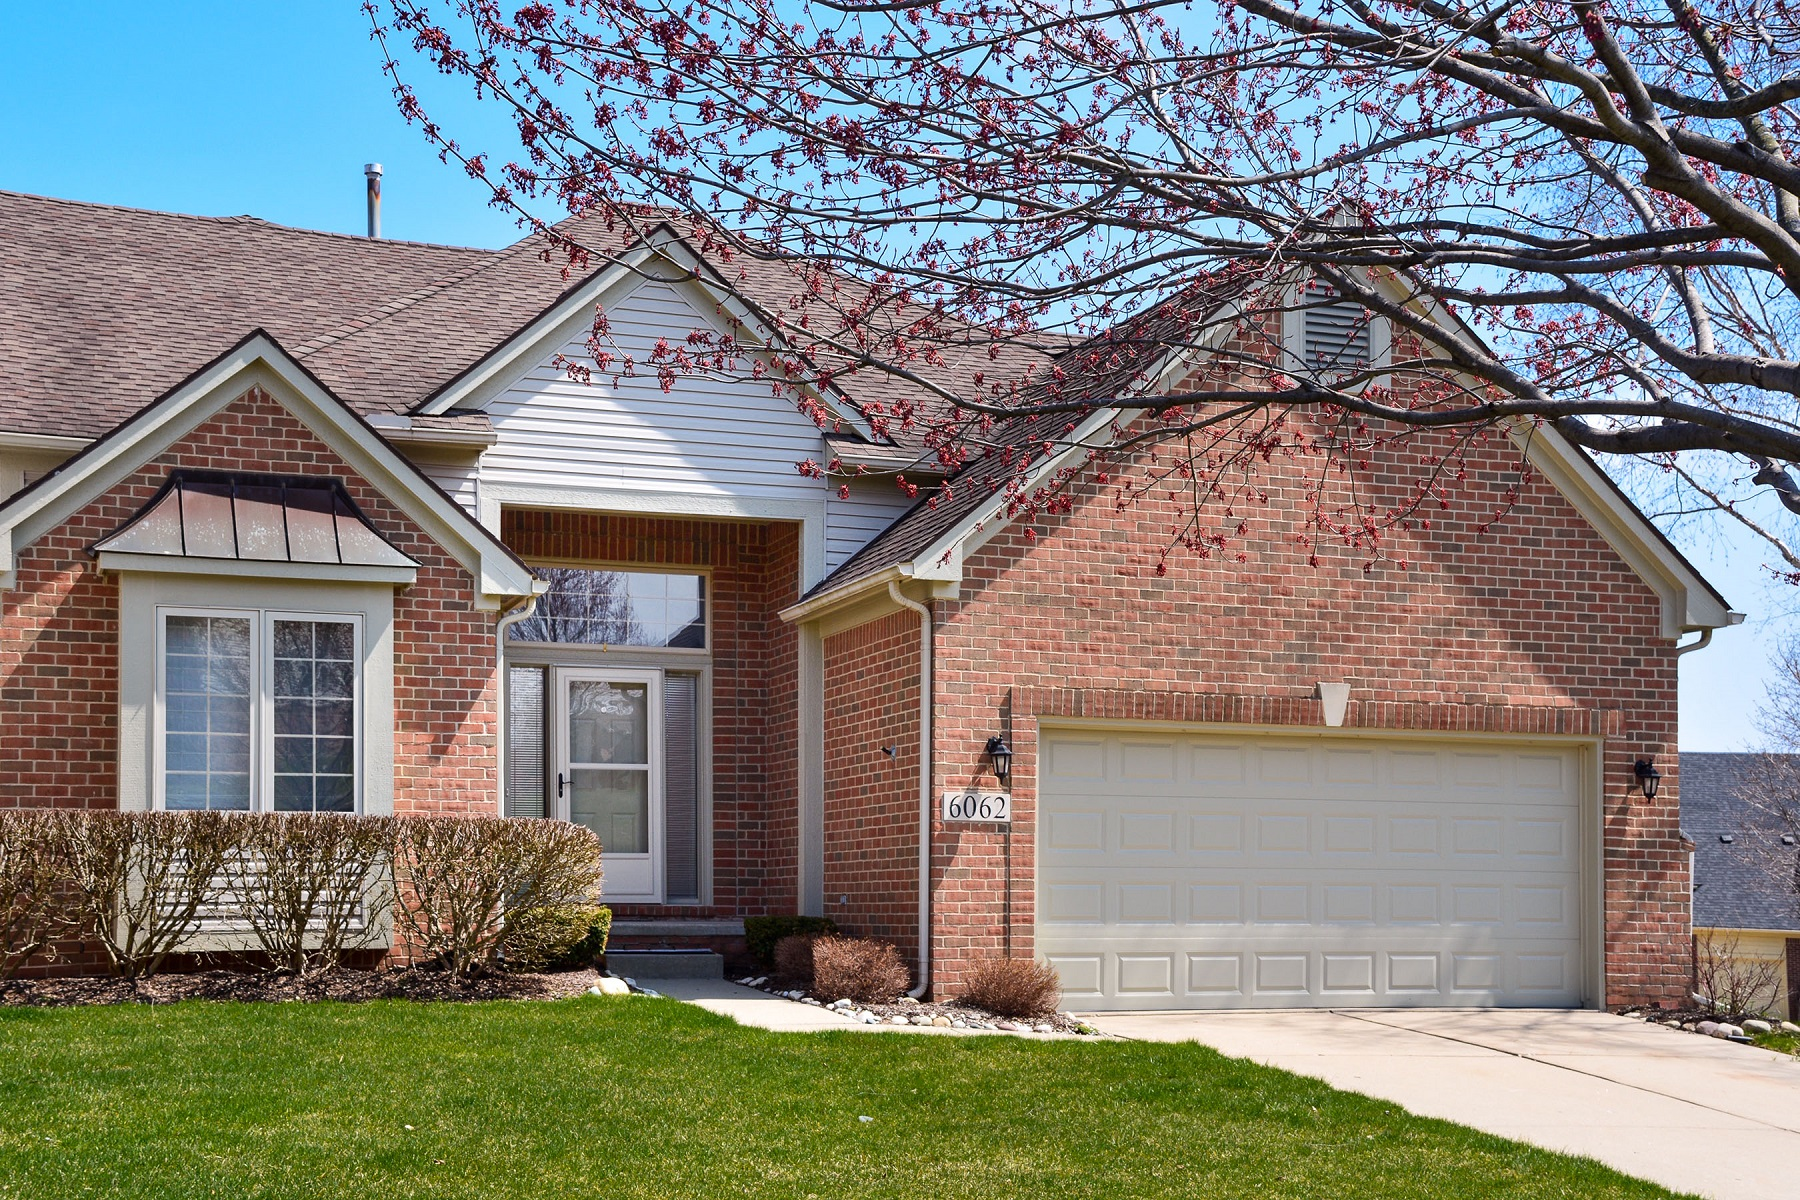 Condominiums for Sale at Commerce Township 6062 Warwick Drive Commerce Township, Michigan 48382 United States